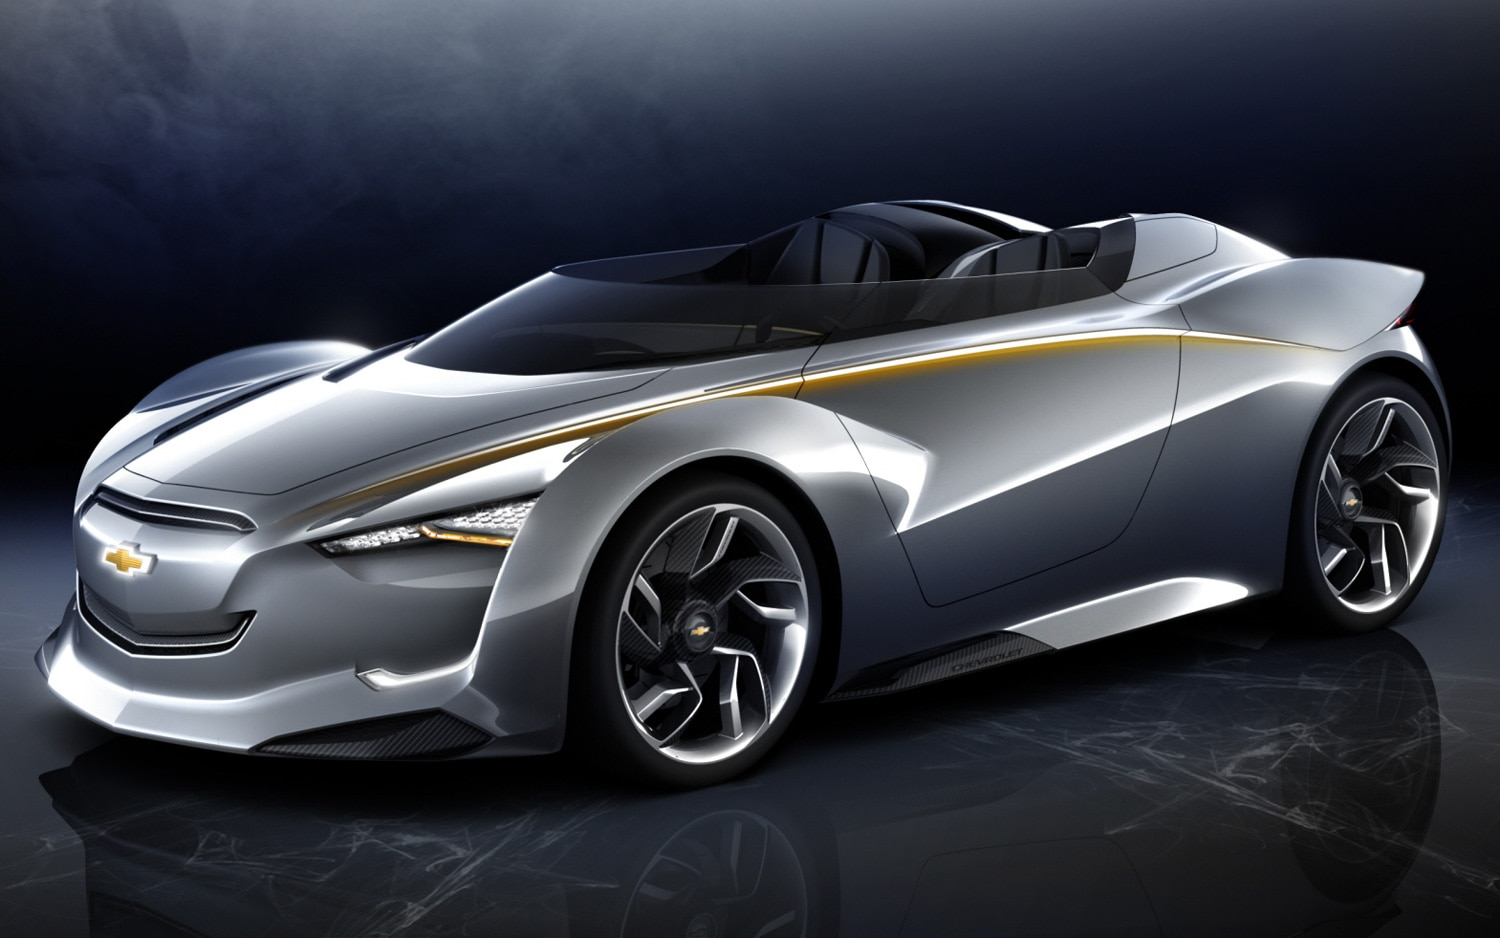 2011 Chevrolet Miray Roadster Concept Front View1